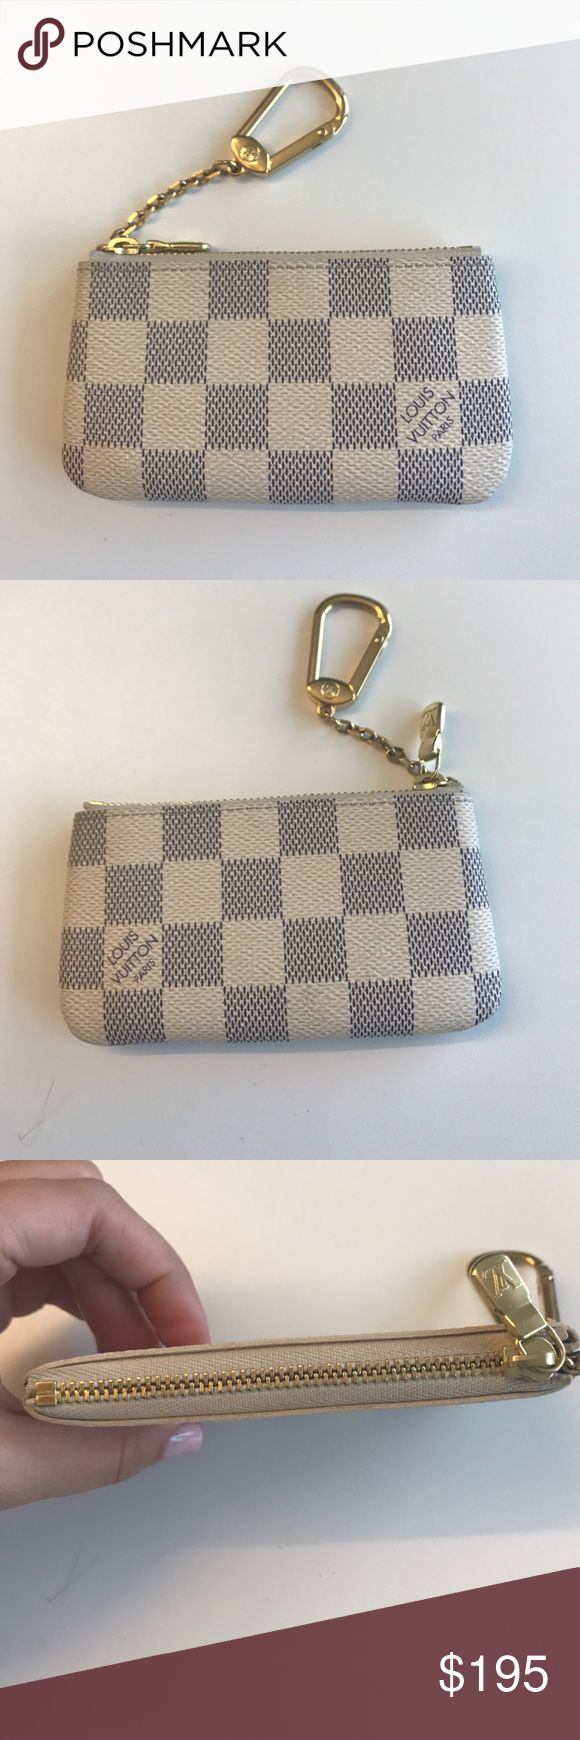 Louis Vuitton key pouch Less than a year old Louis Vuitton coin purse in perfect condition Accessories Key & Card Holders